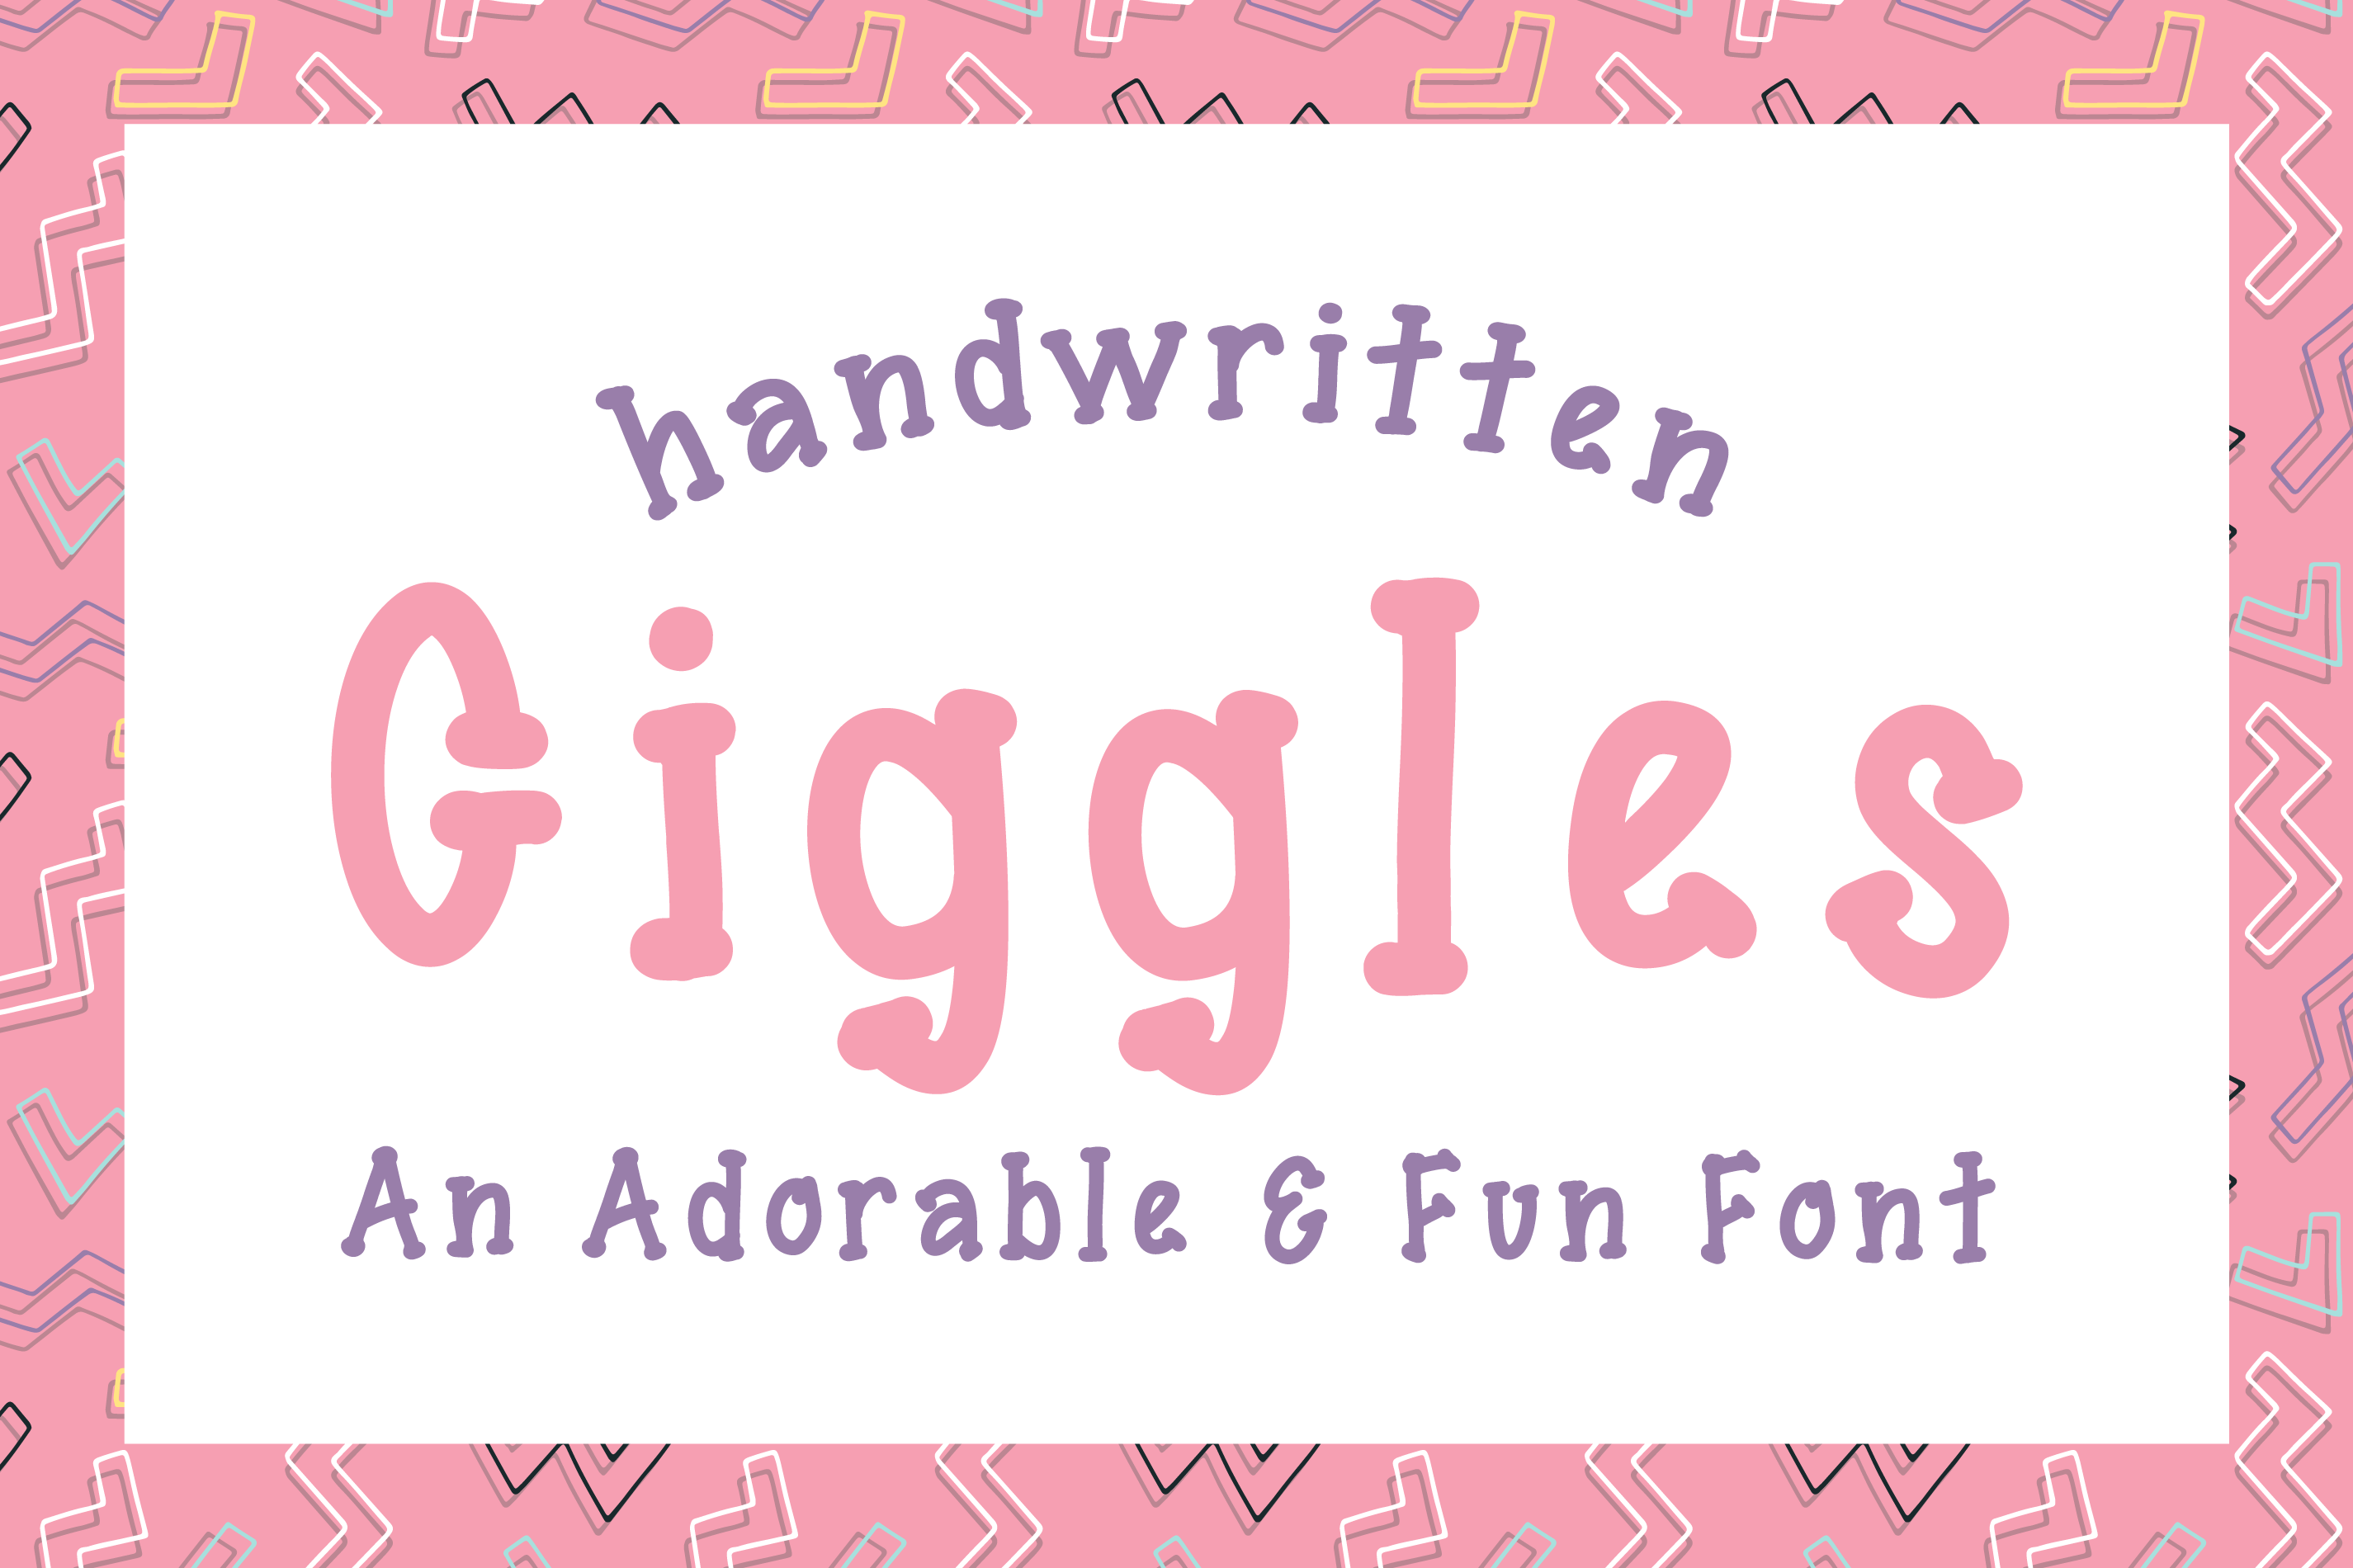 Giggles Dotted Serif Font example image 1